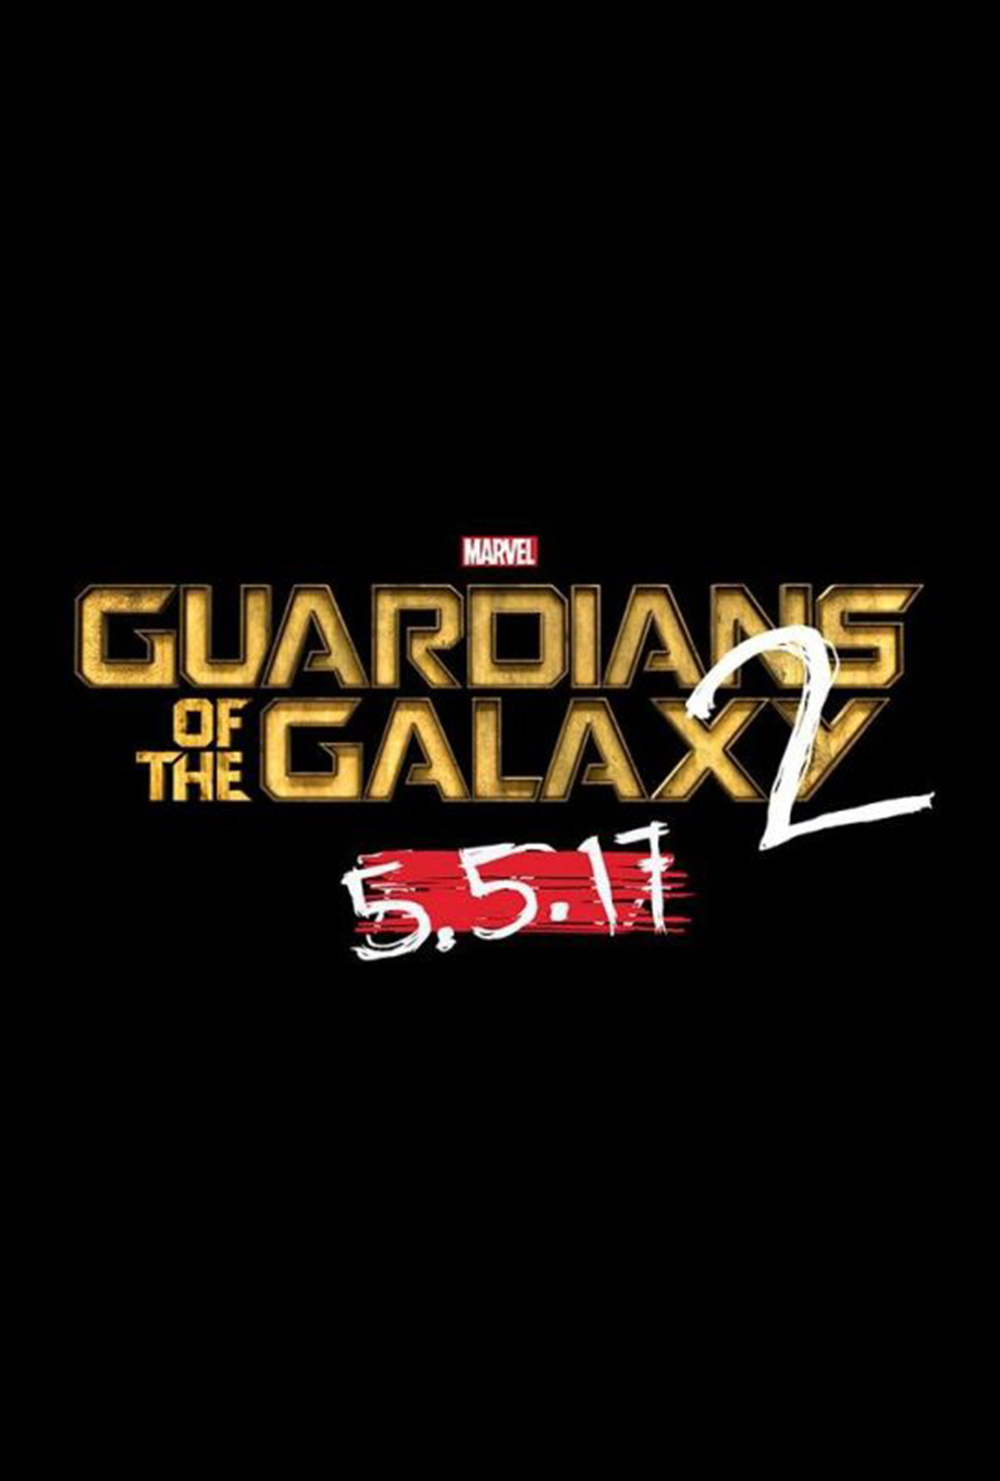 landscape-movies-marvel-poster-guardians-of-the-galaxy.jpg